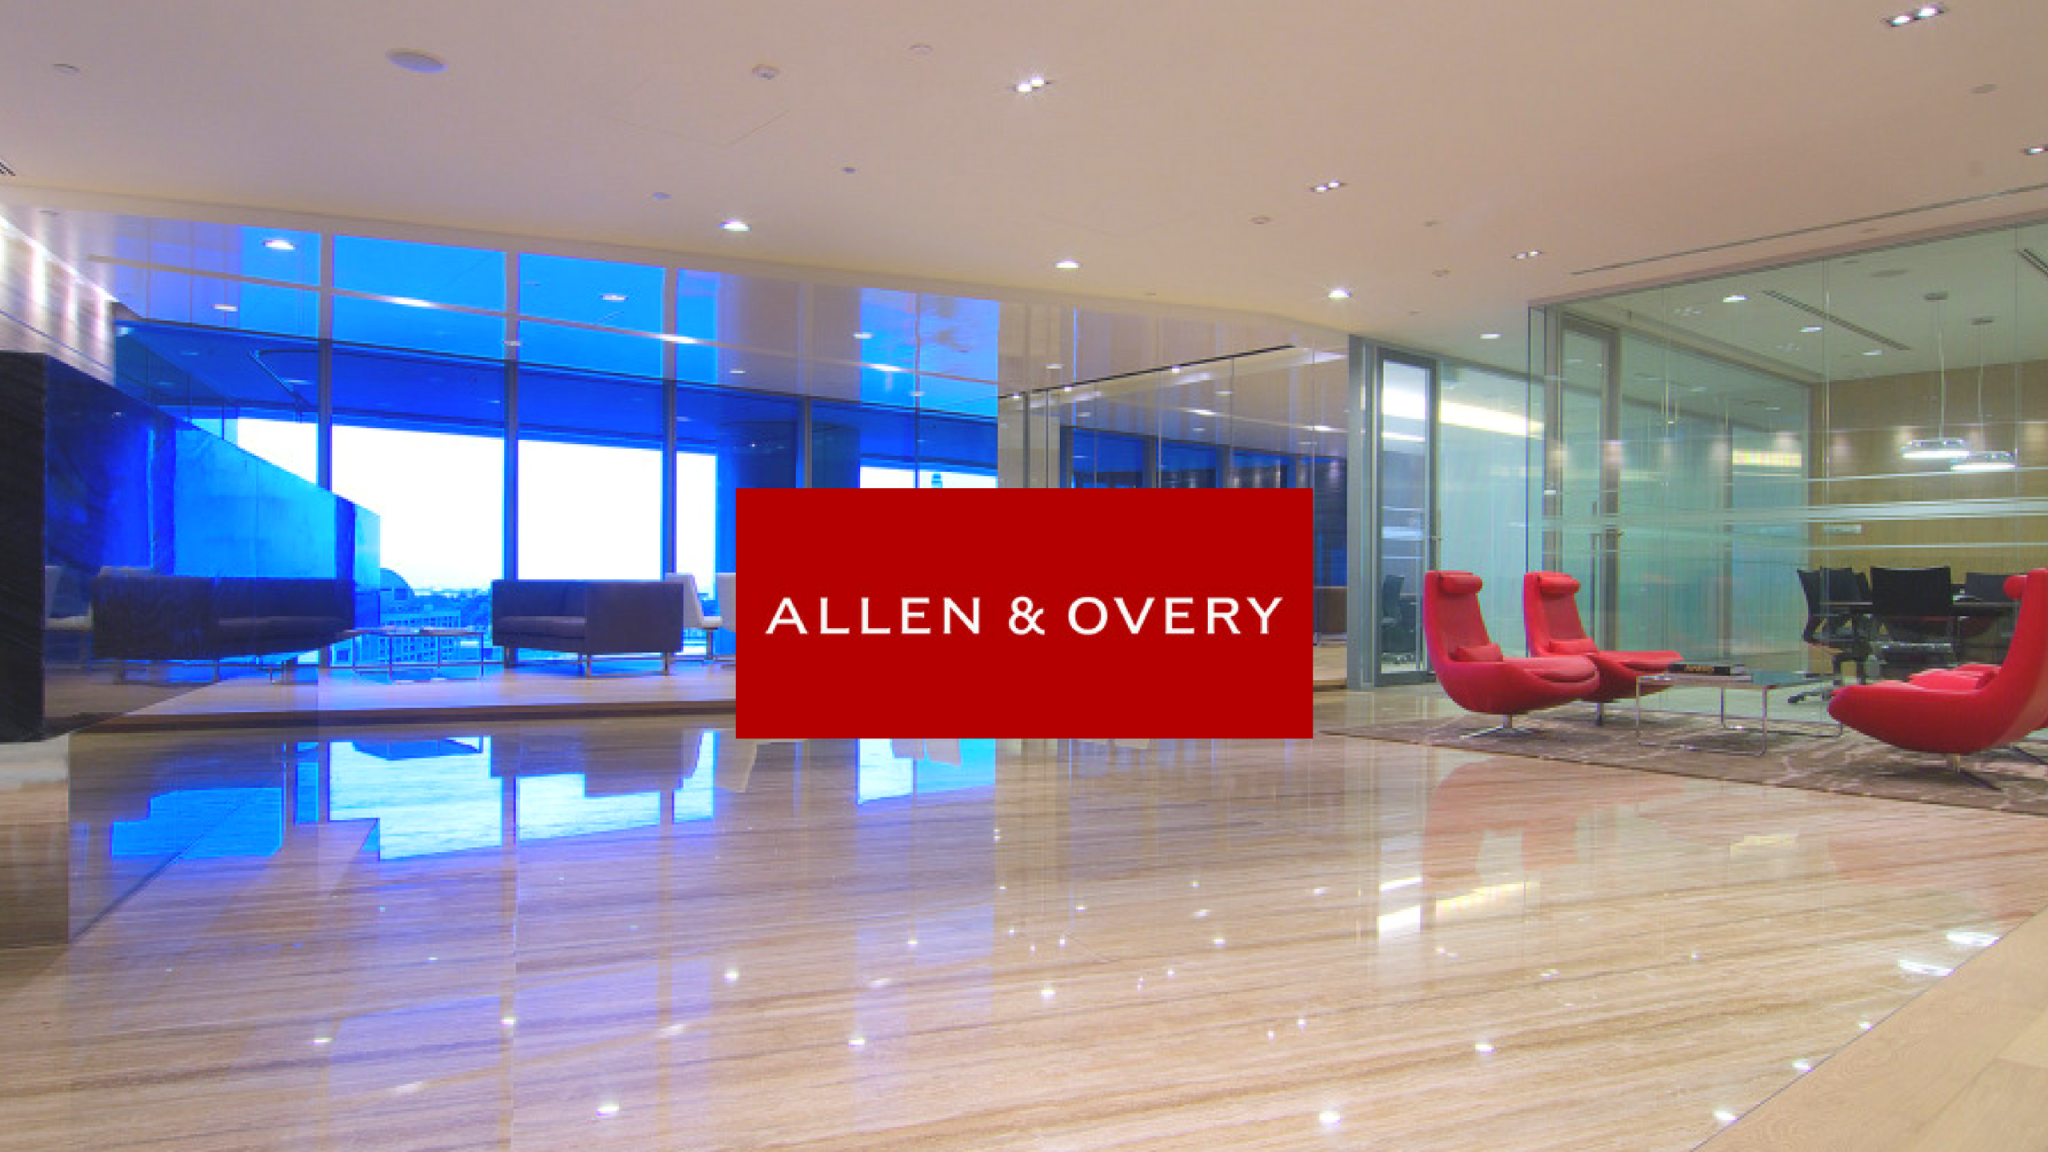 Allen & Overy Best Law Firms in the World Top 50